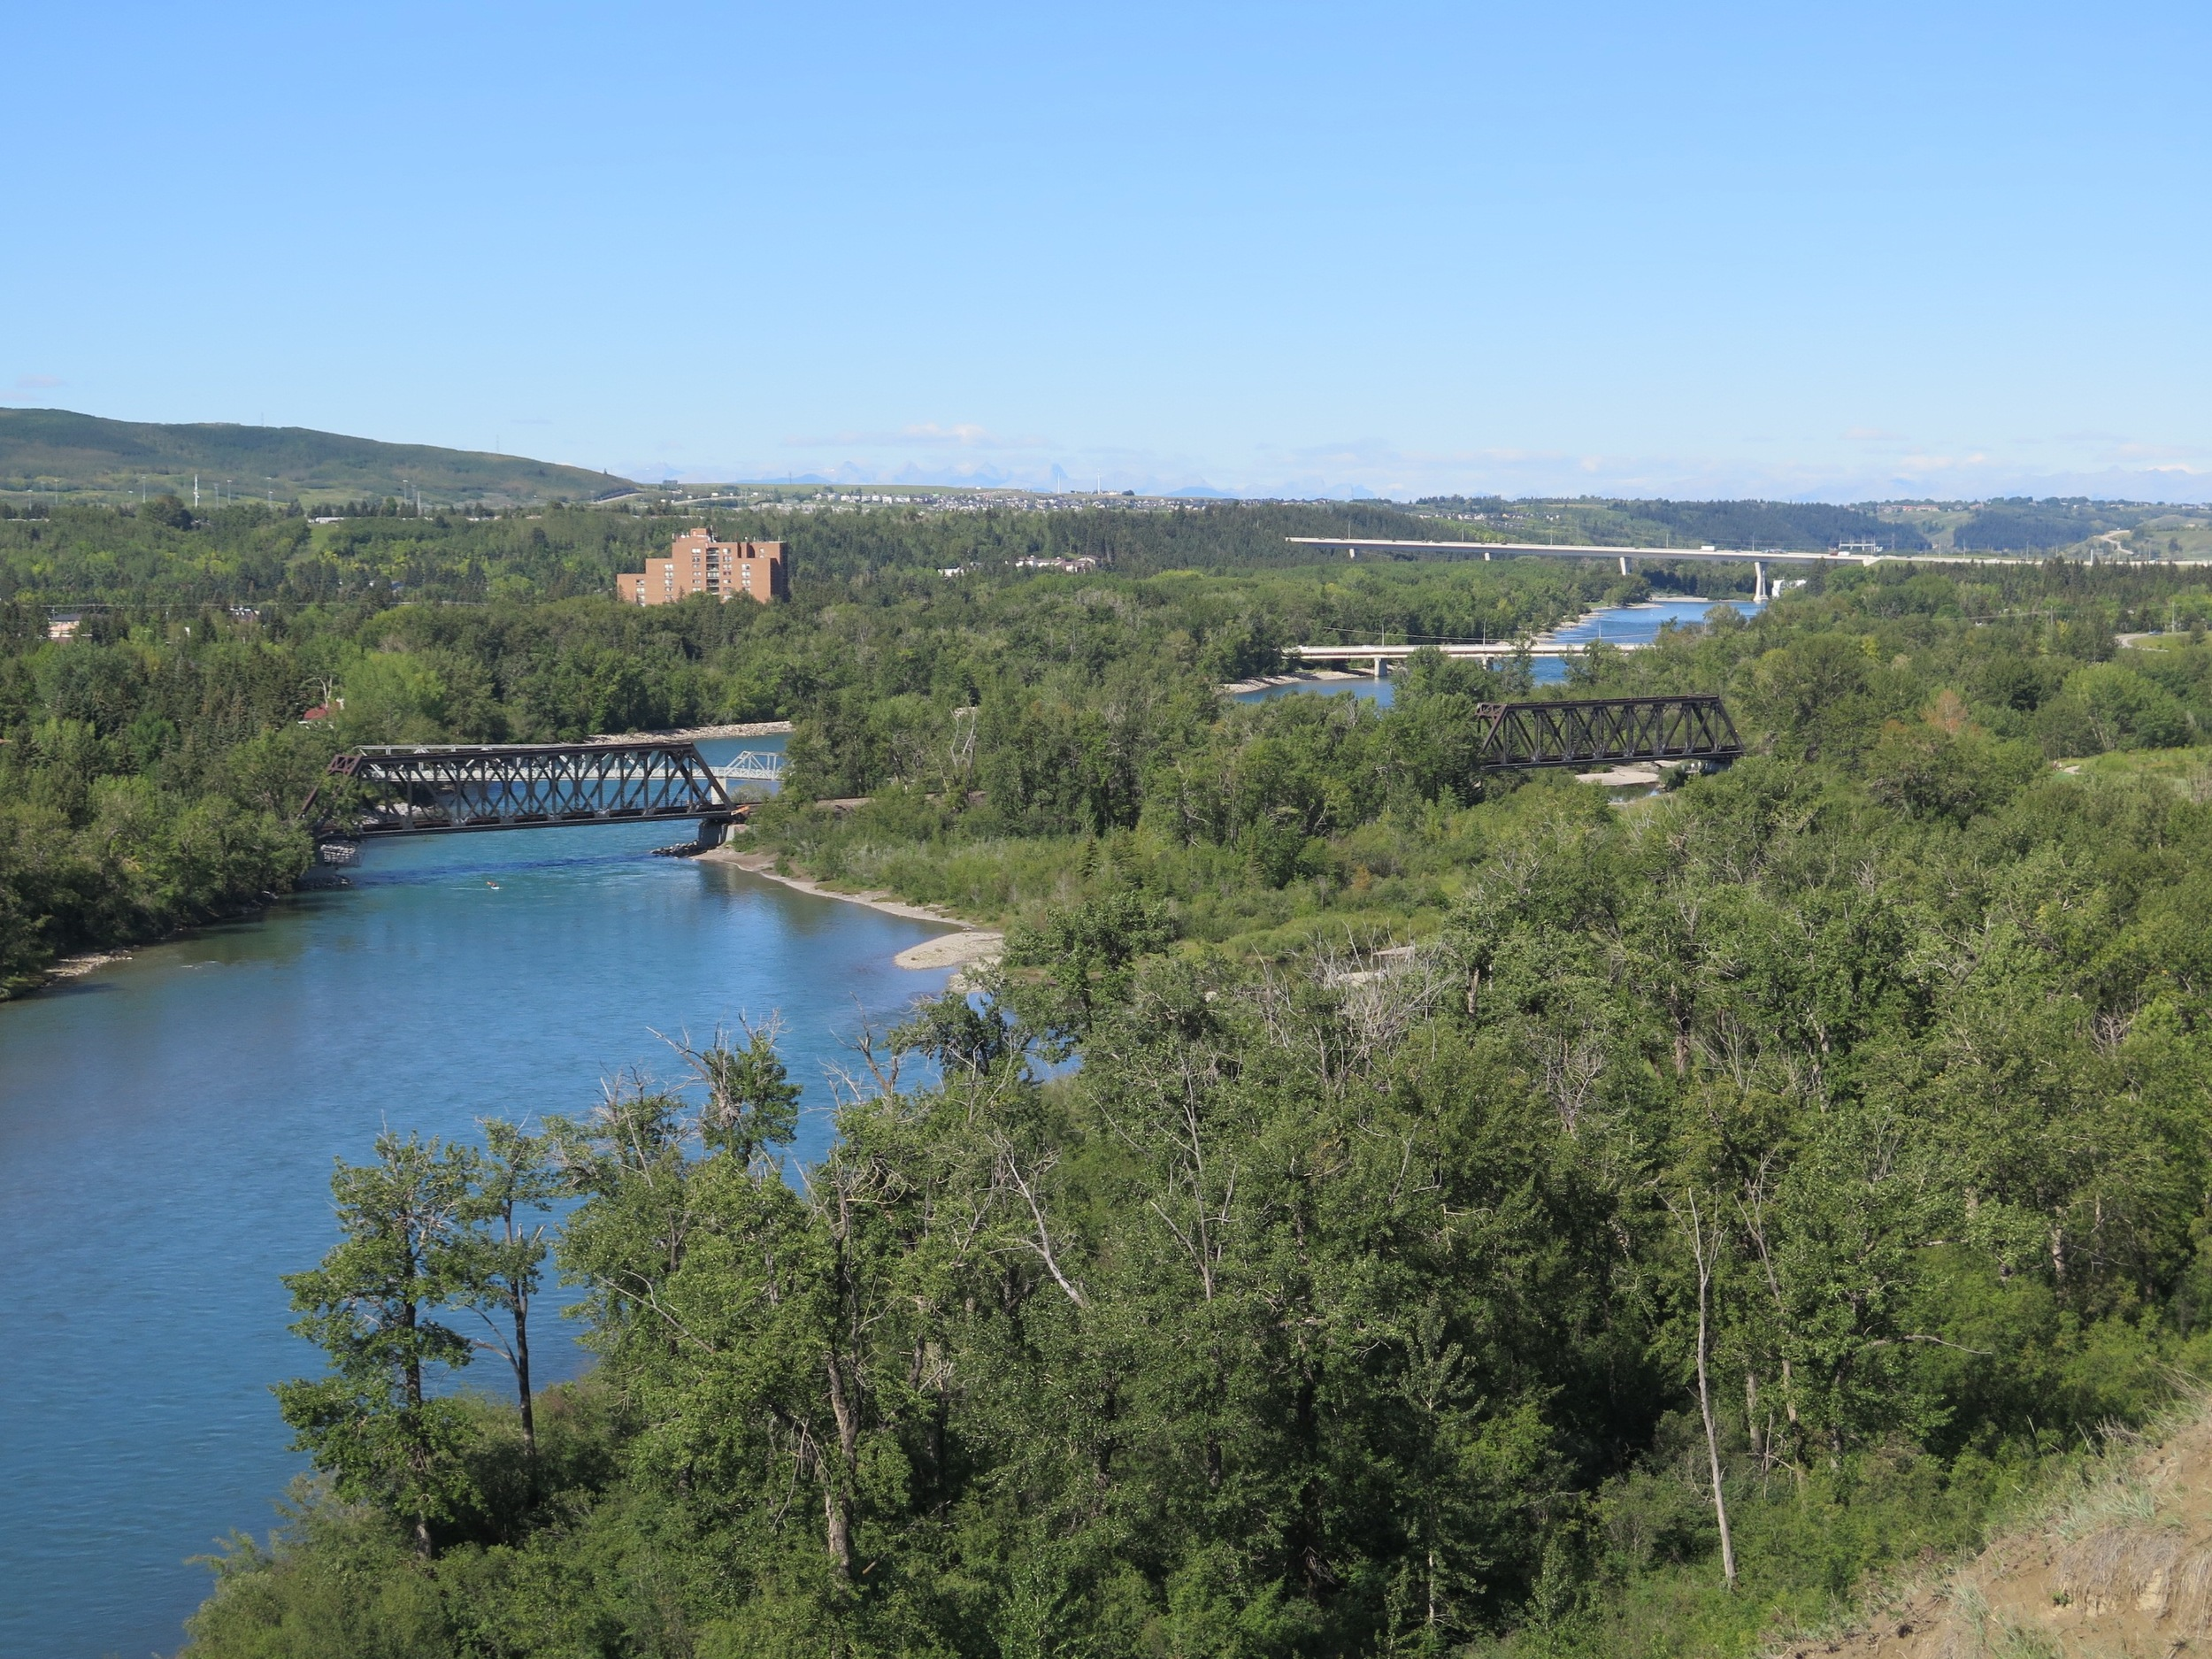 The landmark twin railway bridges in Bowness, looking west from Bowmont Park, with Stoney Trail in the distance (Photo: Blair Carbert)